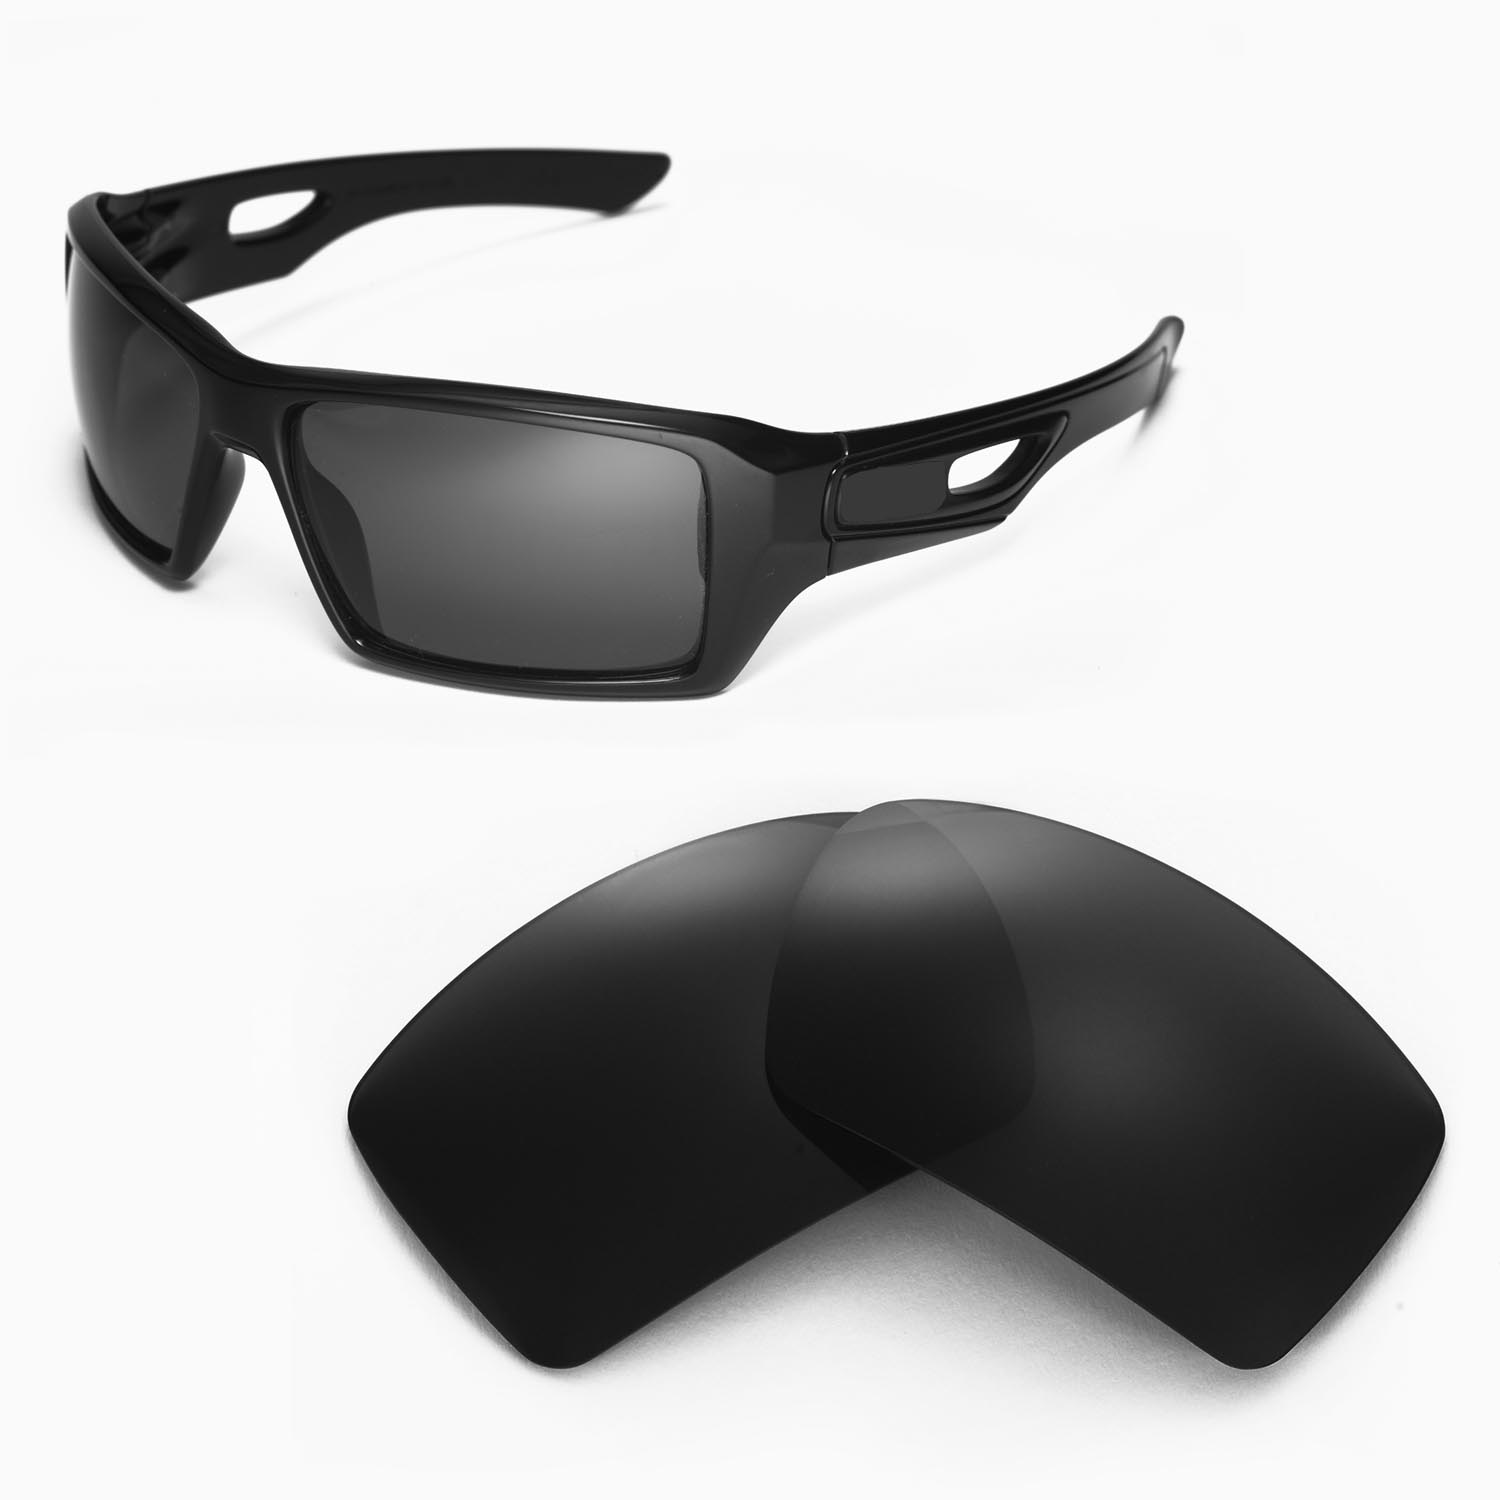 e97d342015 Details about New WL Polarized Black Replacement Lenses For Oakley Eyepatch  2 Sunglasses